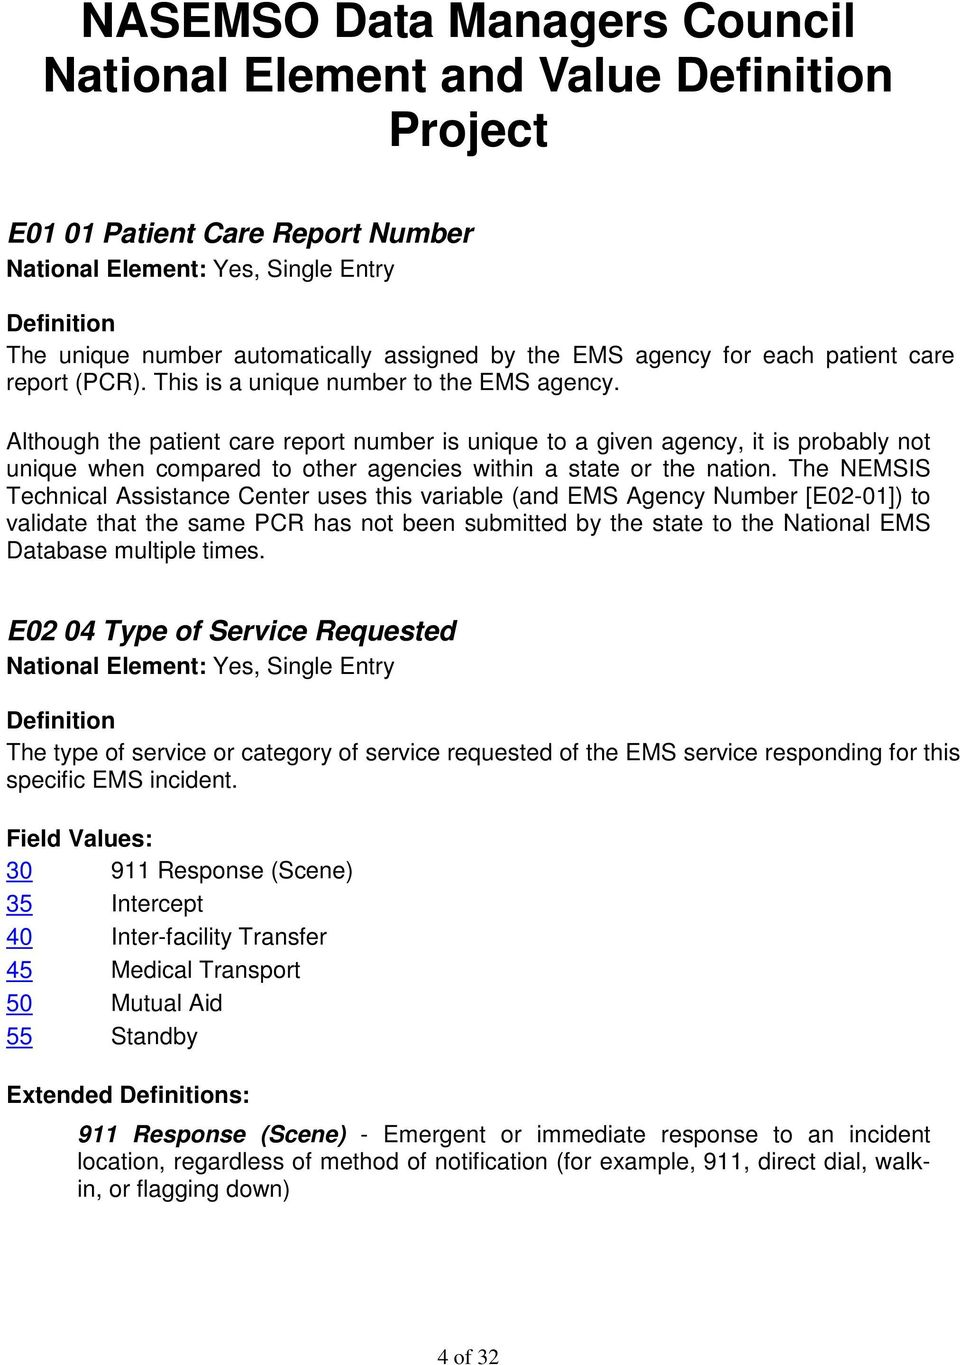 The NEMSIS Technical Assistance Center uses this variable (and EMS Agency Number [E02-01]) to validate that the same PCR has not been submitted by the state to the National EMS Database multiple